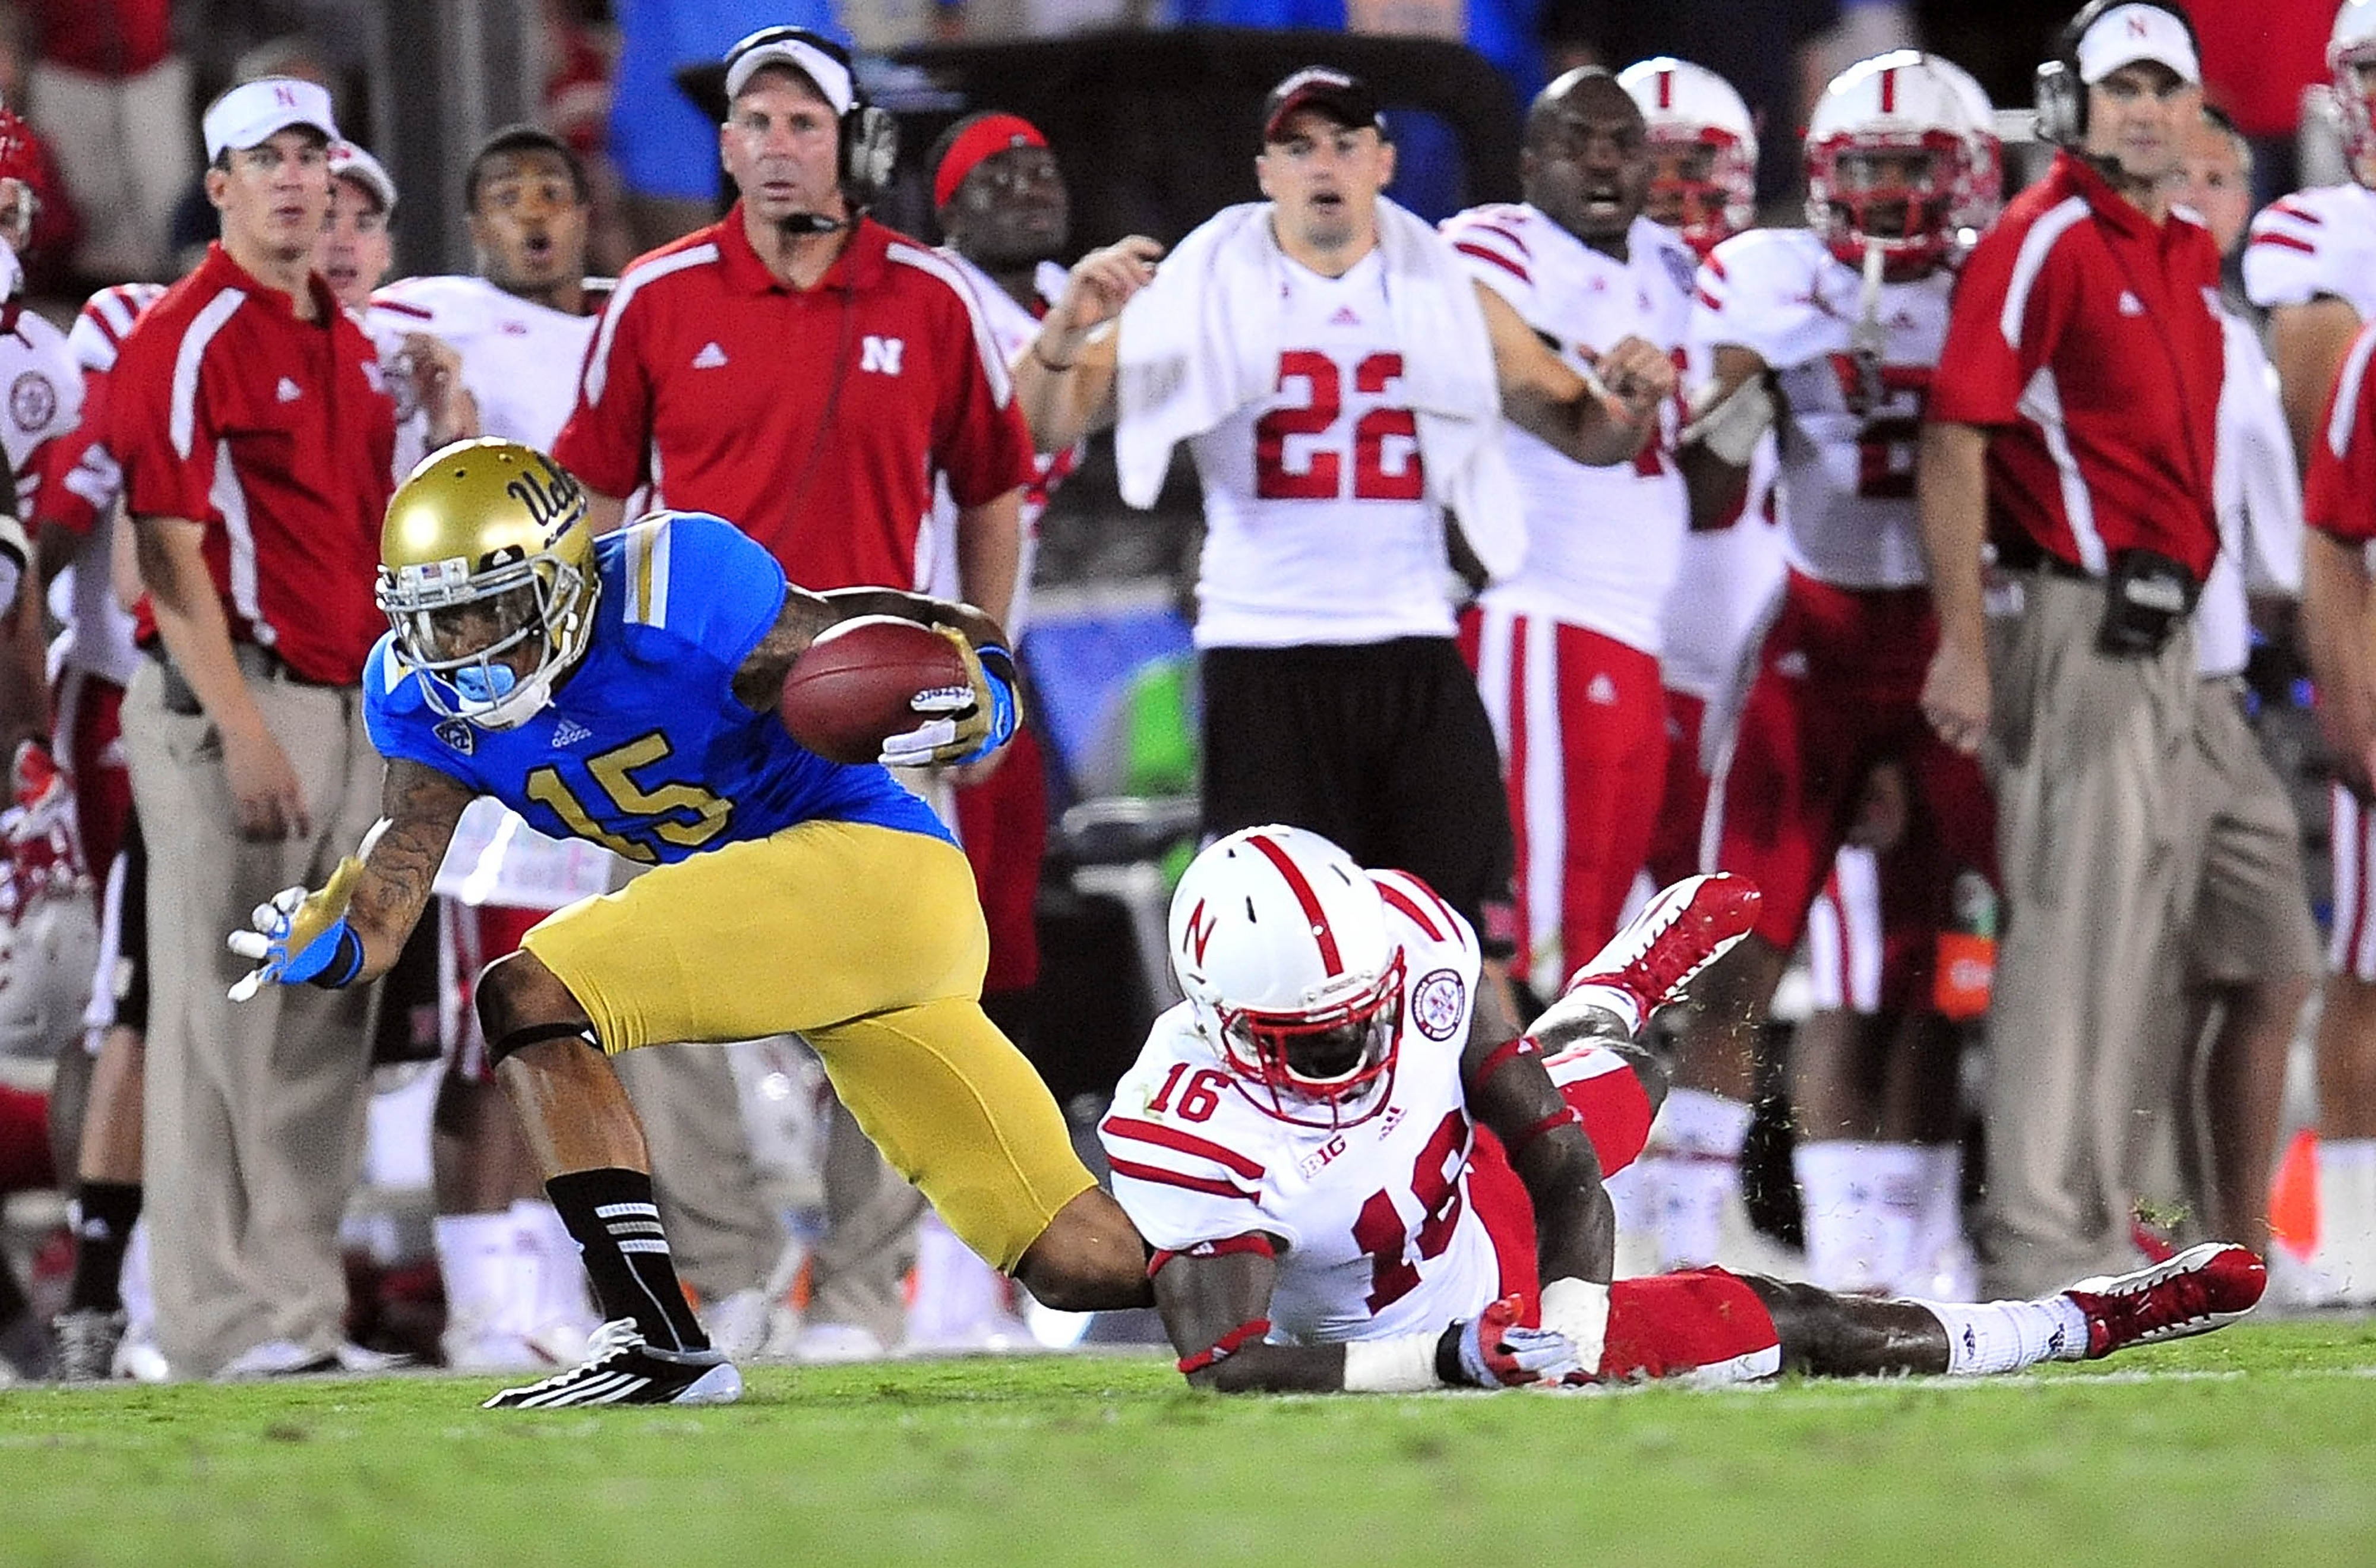 Can the Bruins get going early against the Huskers in '13?